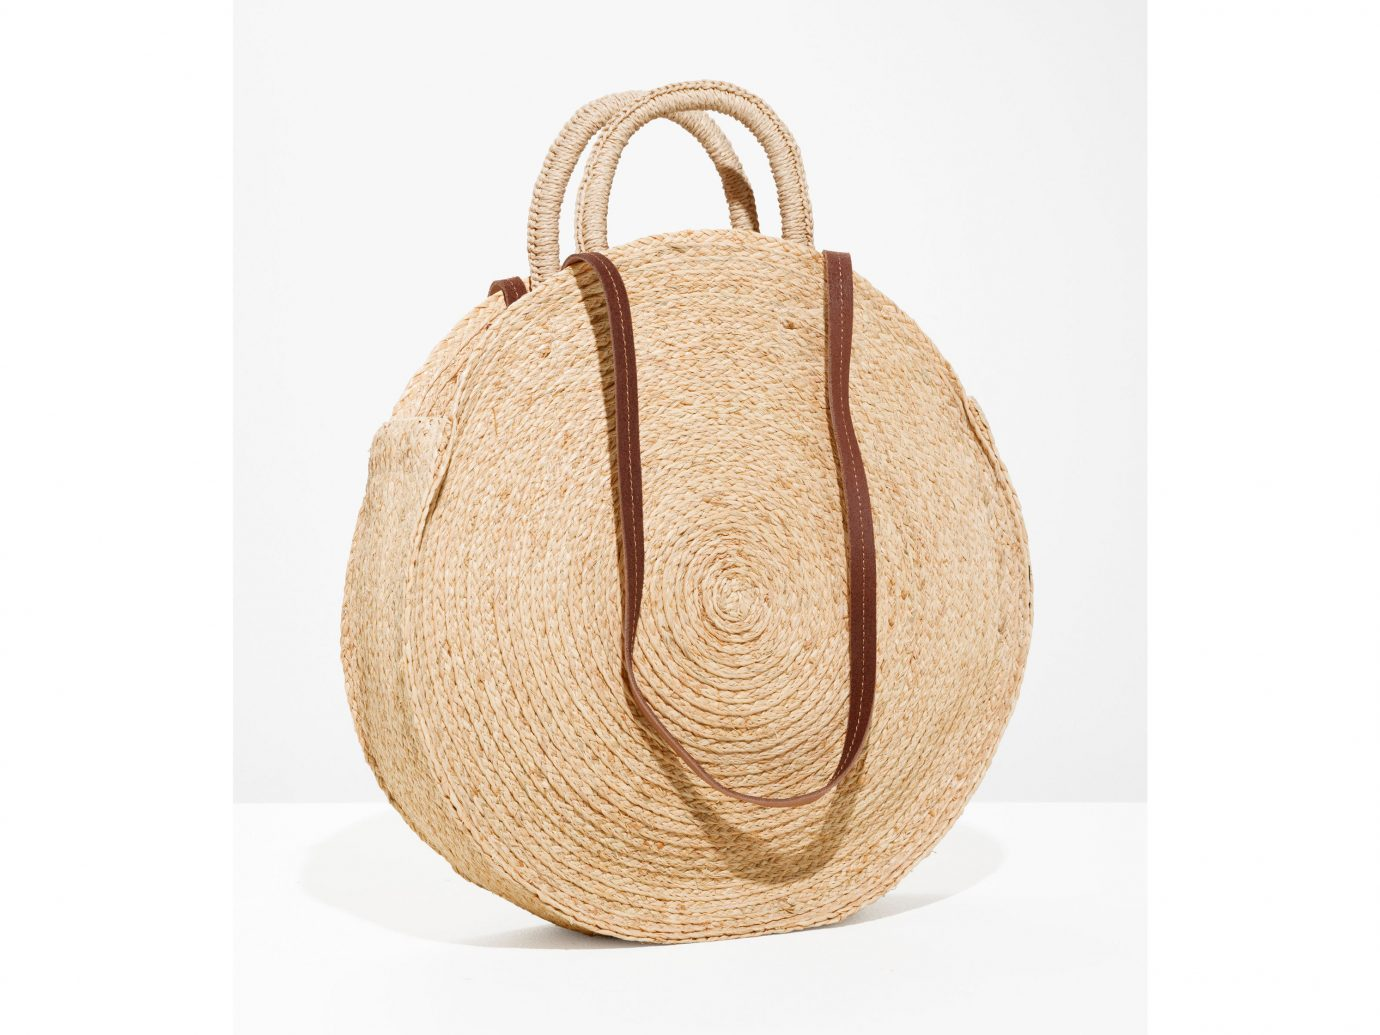 Spring Travel Style + Design Summer Travel Travel Lifestyle Travel Shop beige product design product basket bag accessory